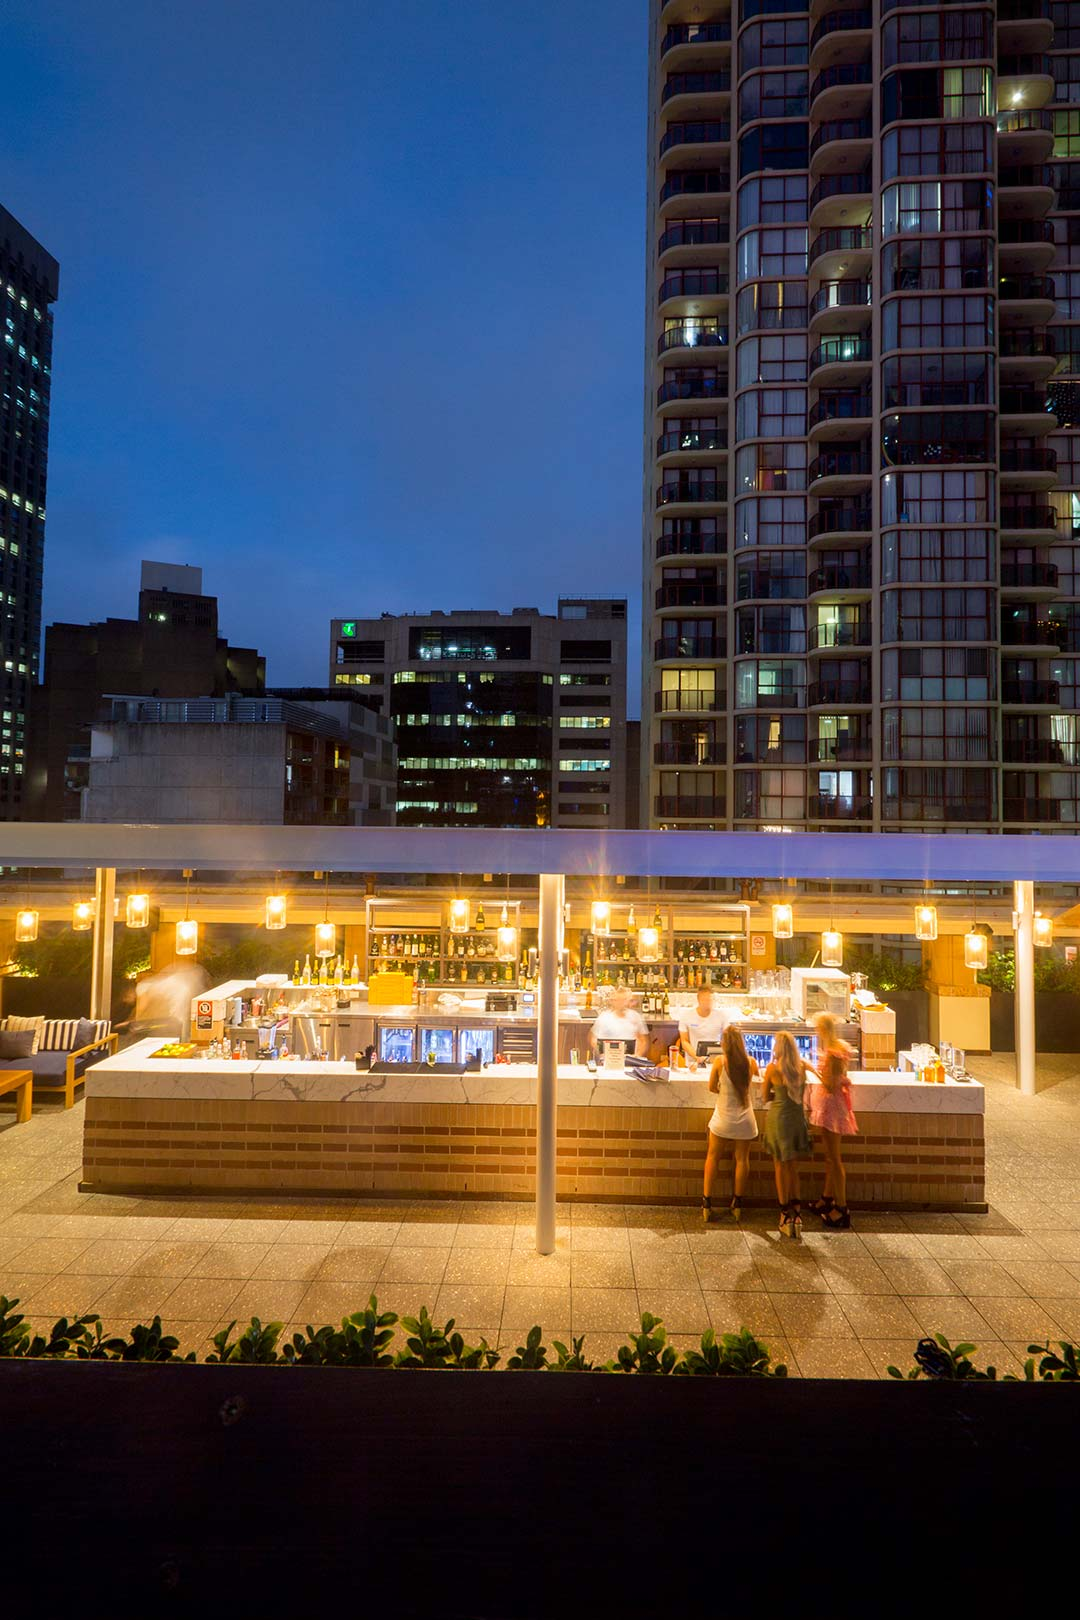 Image of the Level Seven rooftop bar at the Primus Hotel at dusk